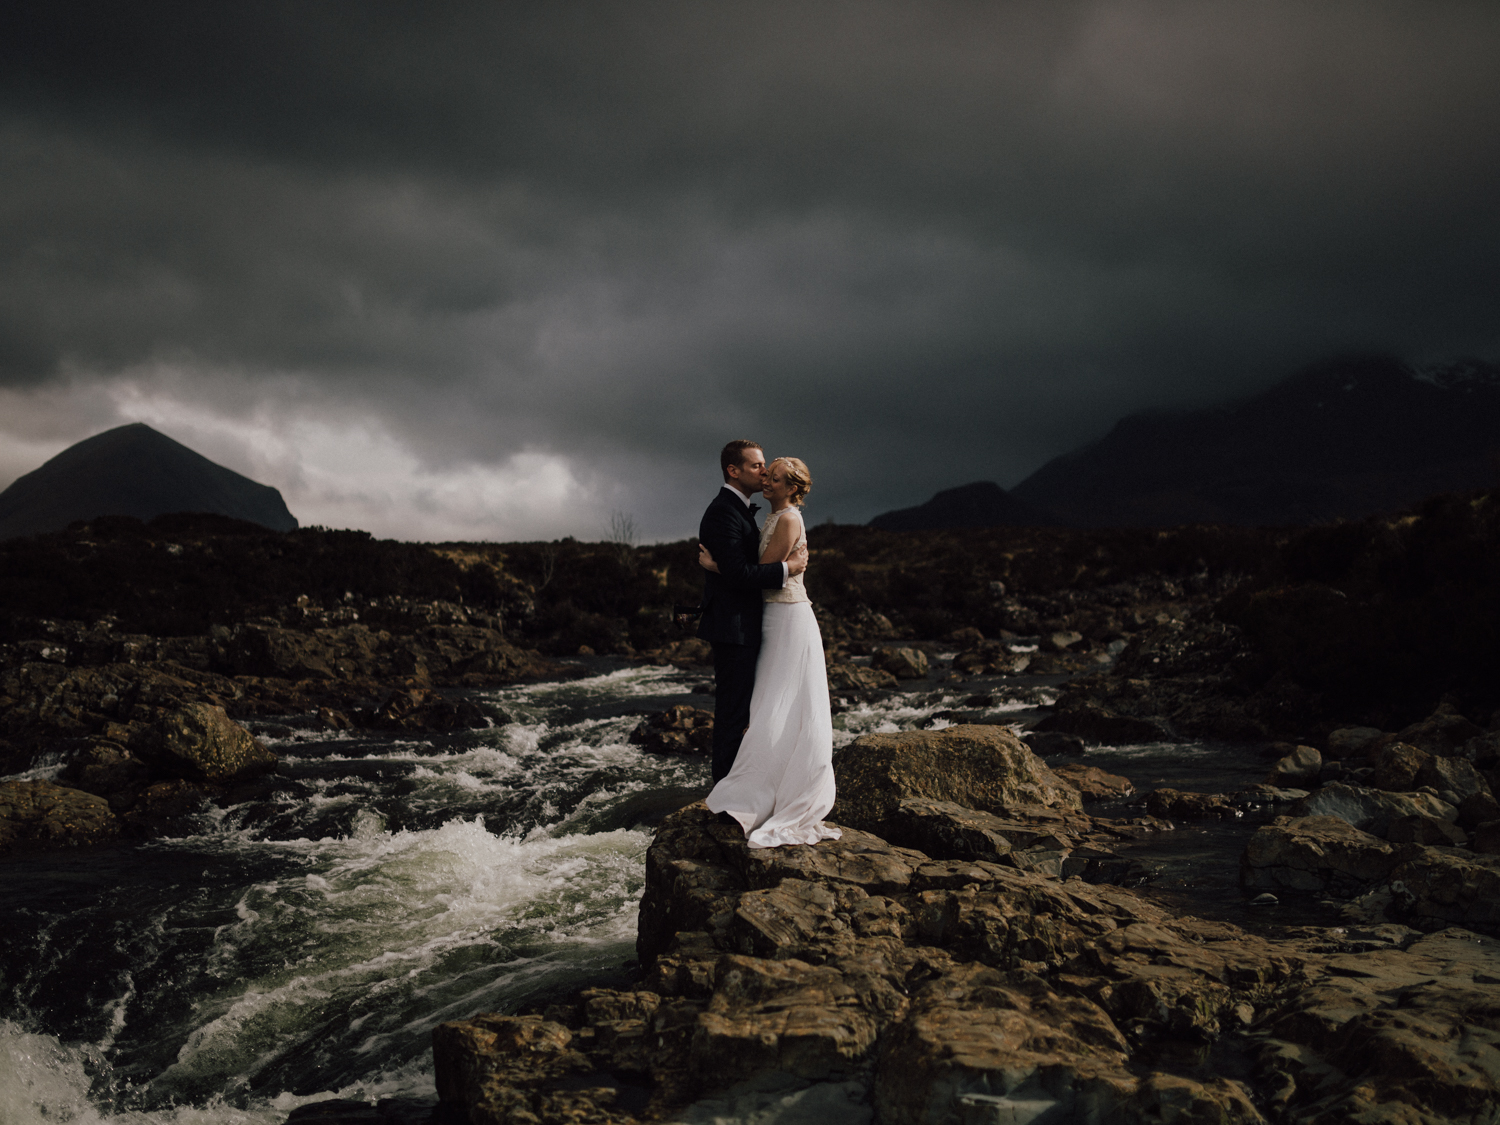 capyture-wedding-photographer-destination-elopement-isle-skye-scotland-379